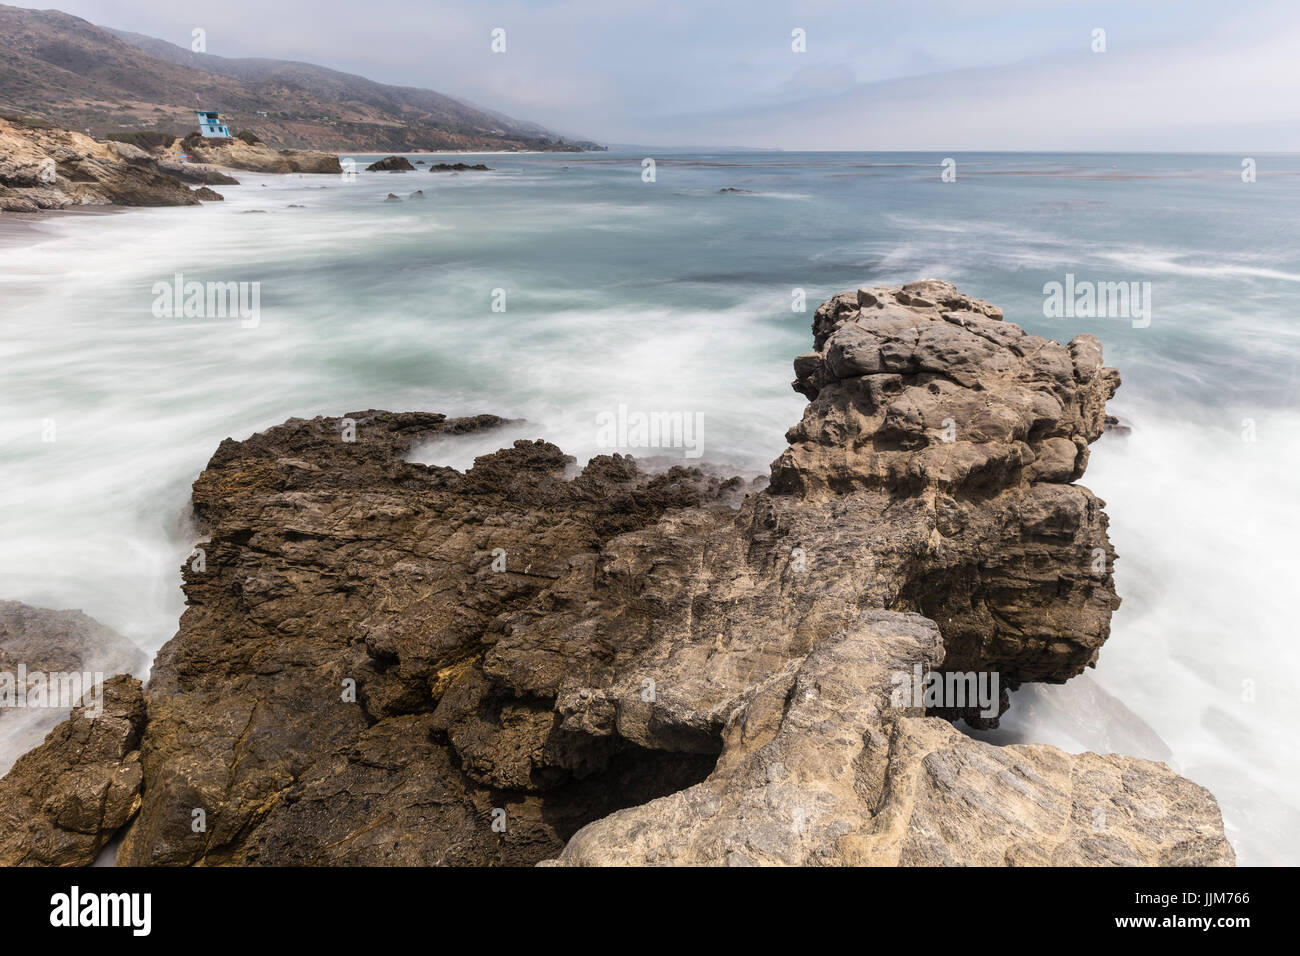 Leo Carrillo State Beach rocky point with motion blur surf in Malibu, California. - Stock Image